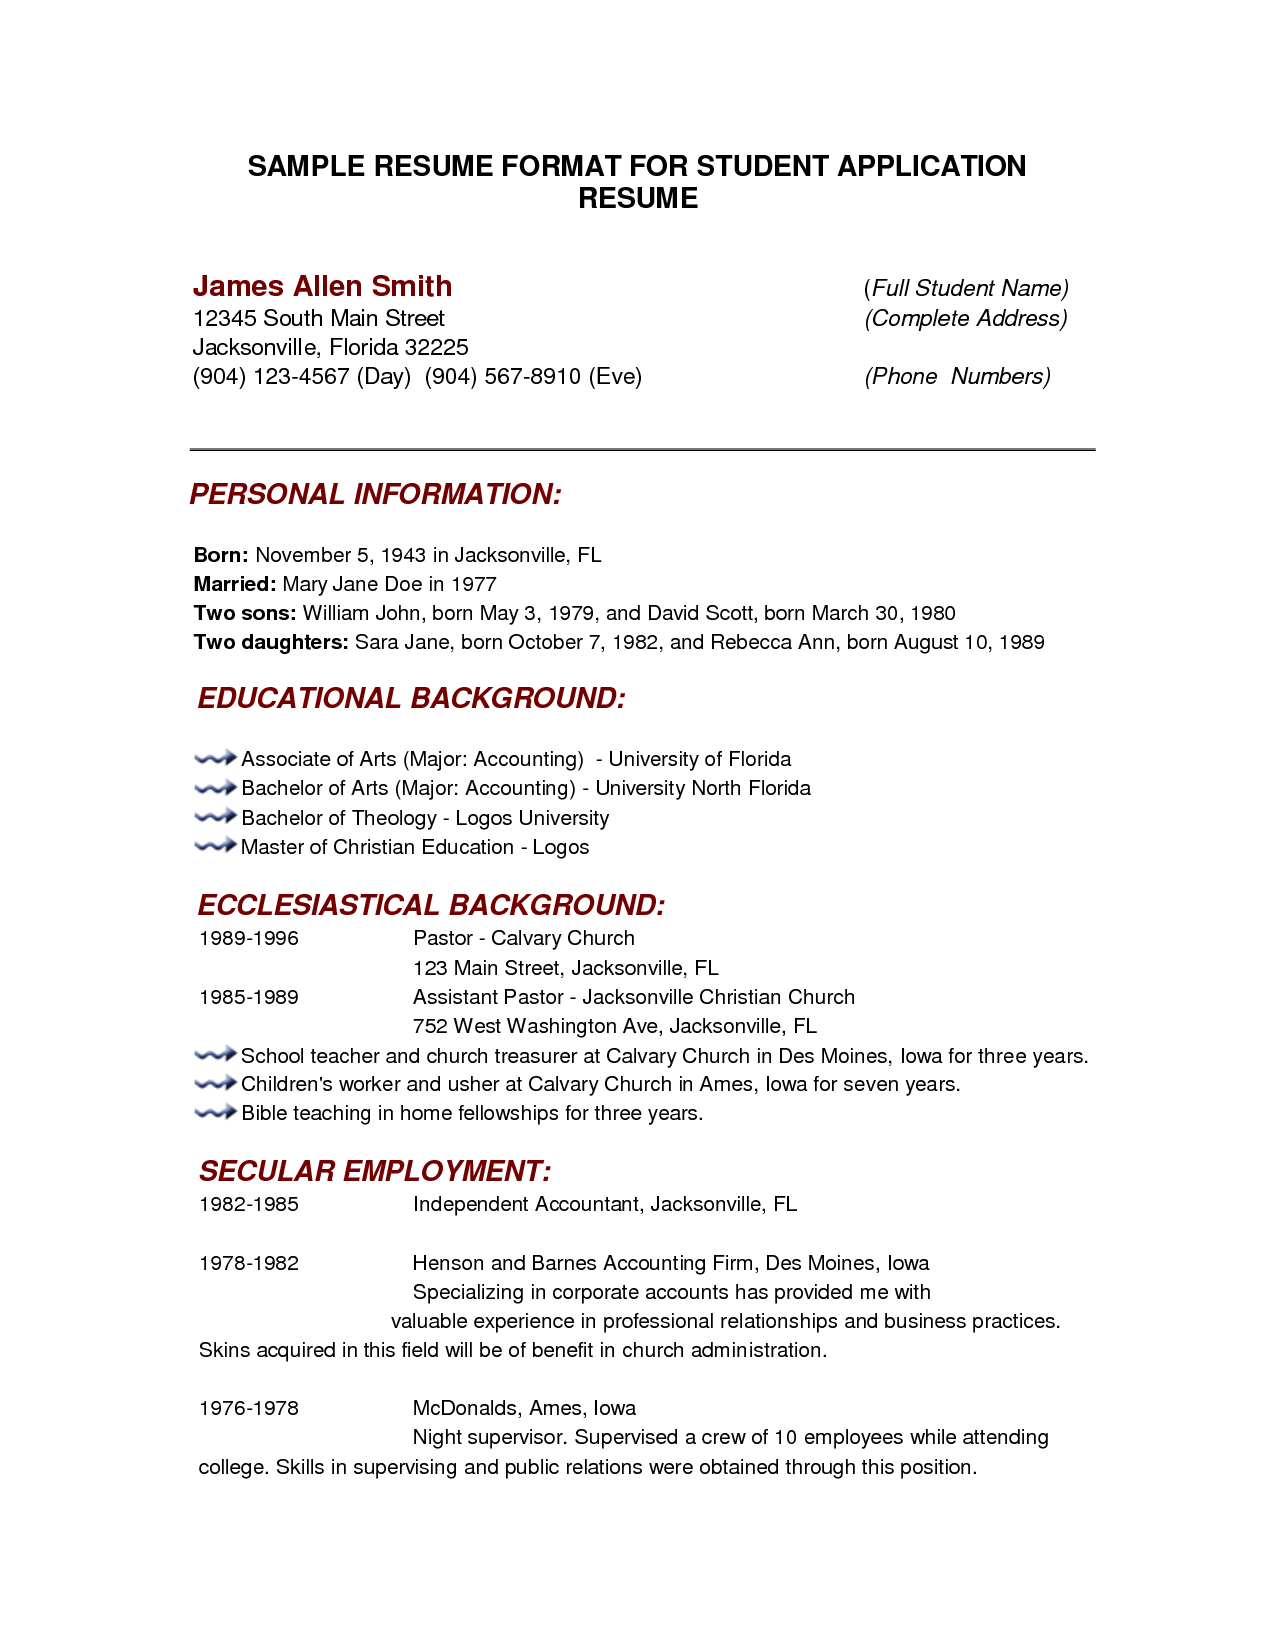 Full block resume format style for business letter examples basic doorman resume sample theatre senior technical recruiter templates curriculum vitae engineering best free home design idea inspiration yelopaper Gallery